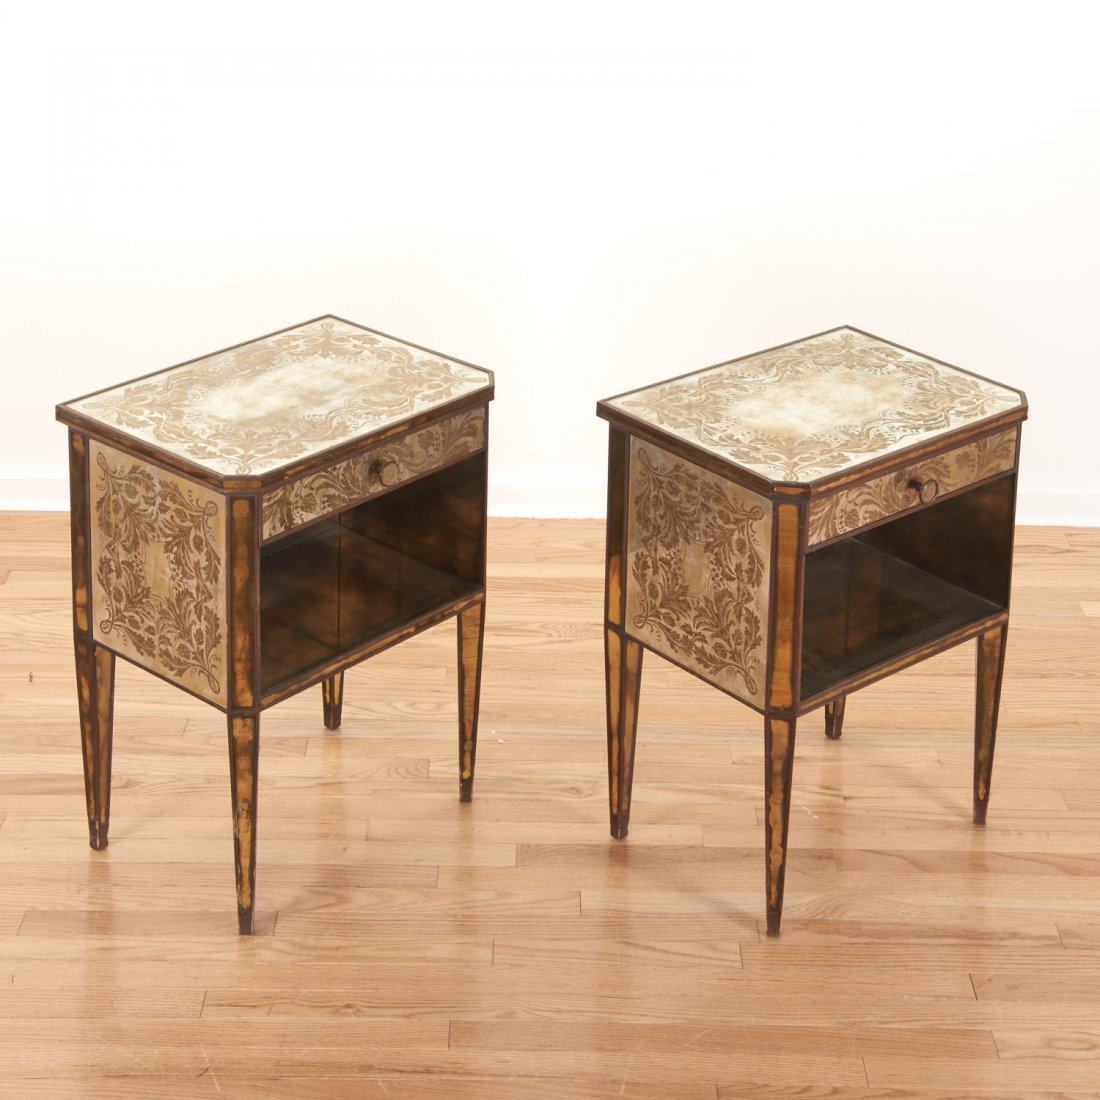 Pair Art Deco mirror paneled side tables